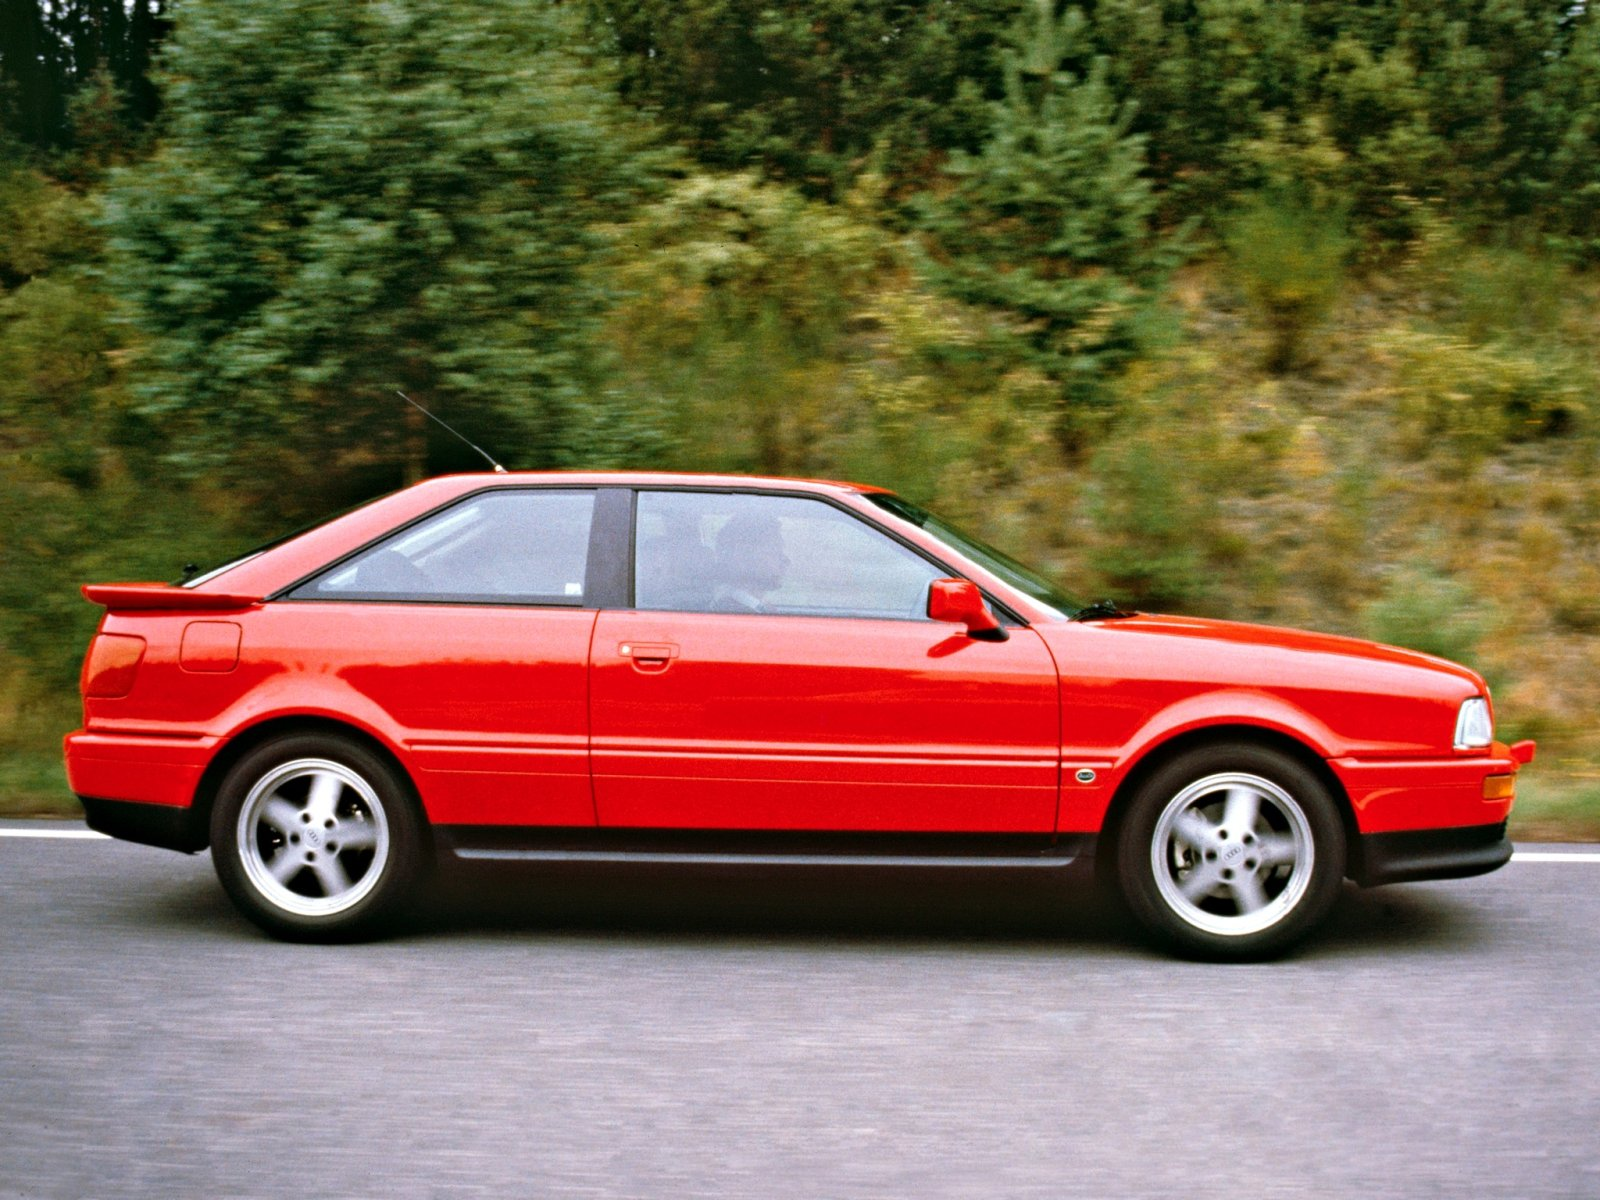 1993 Audi Coupe (89,8b) - pictures, information and specs ...